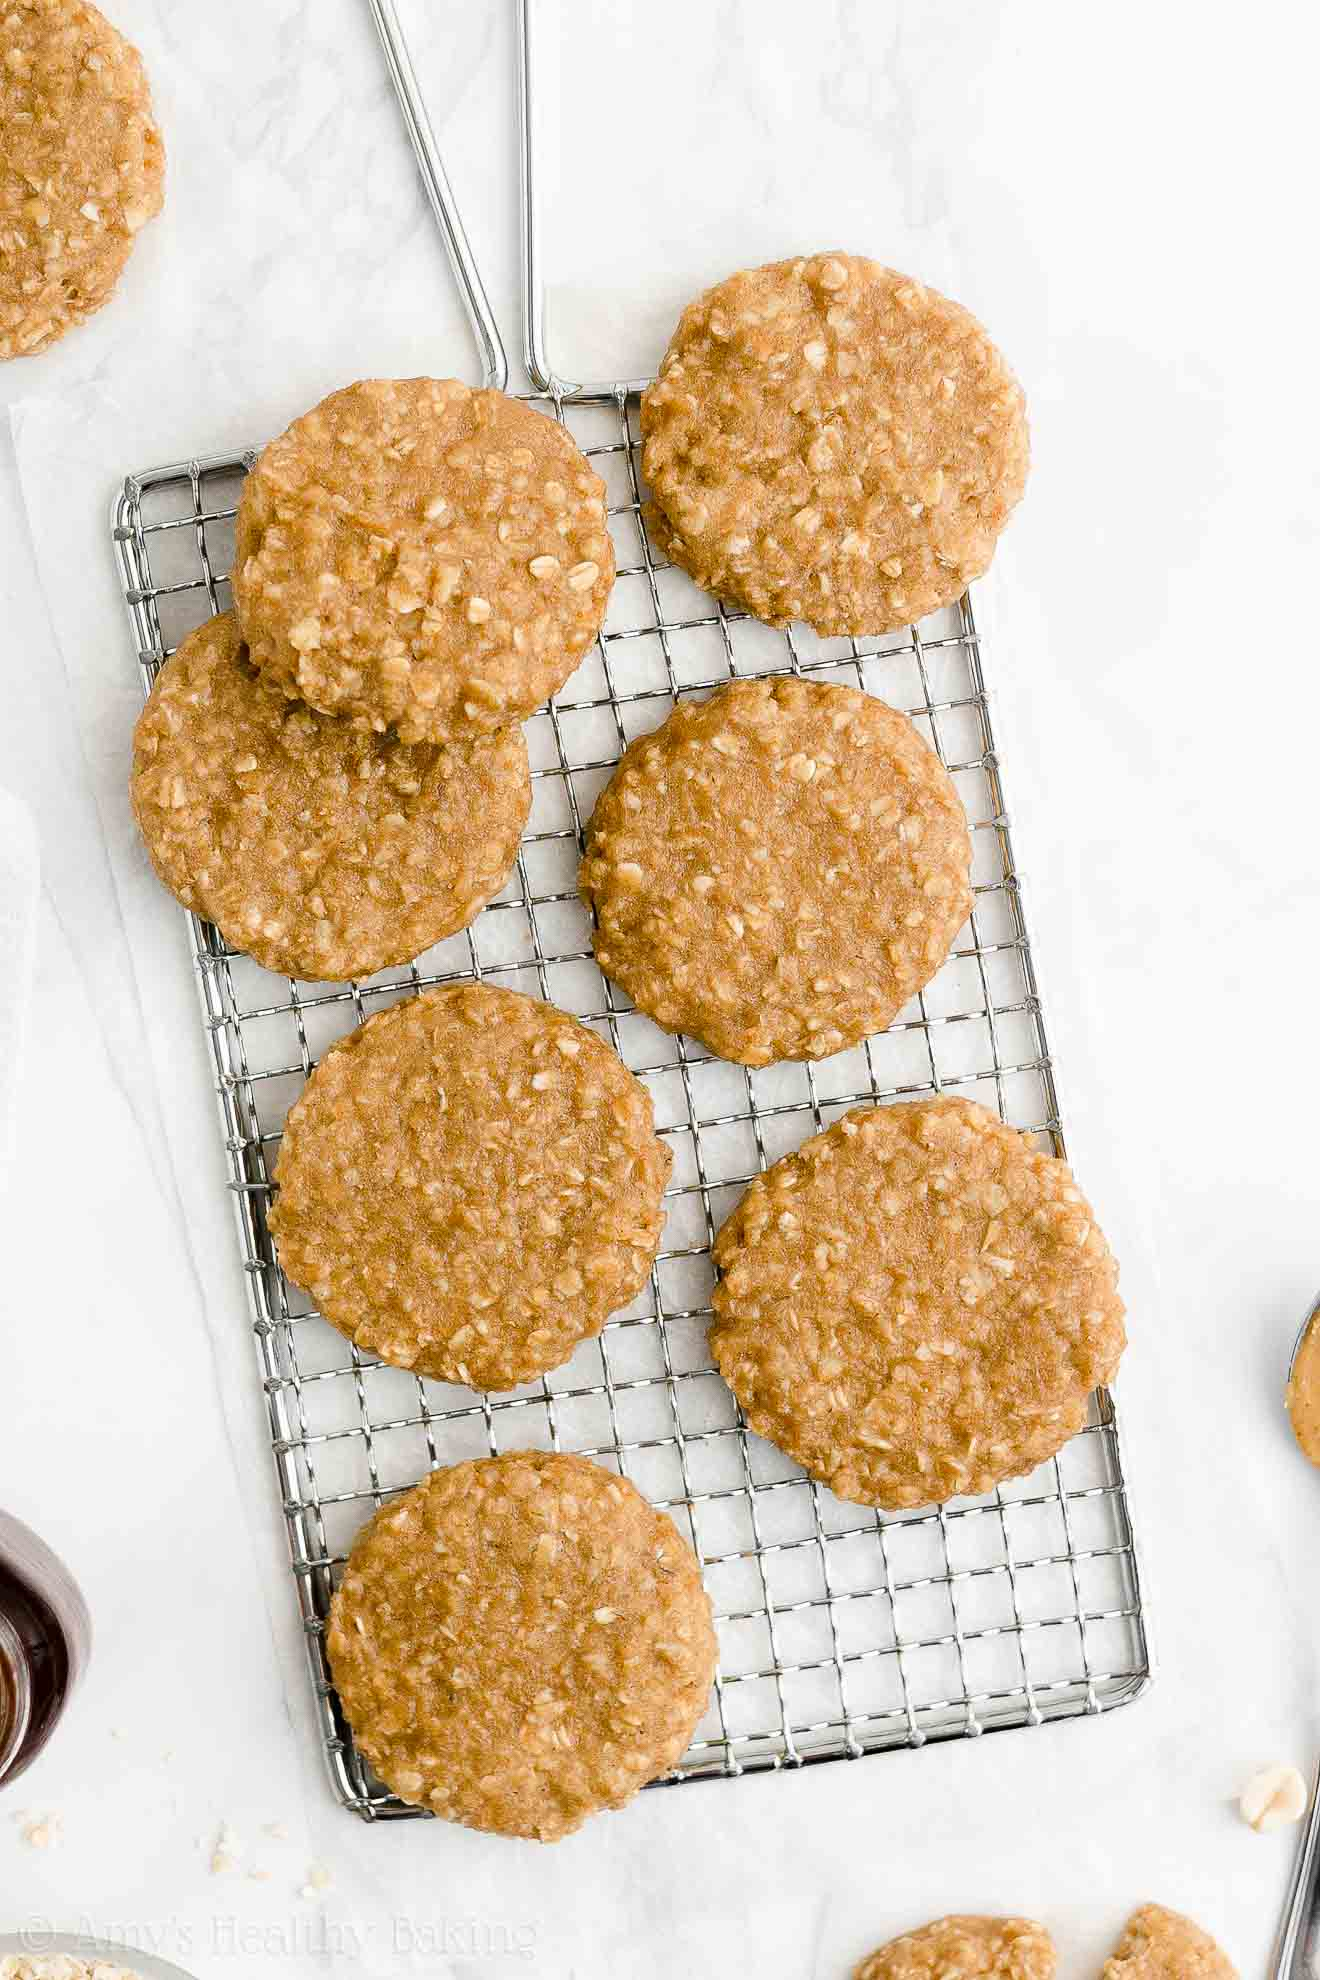 Easy Healthy Low Sugar Soft Chewy Flourless Peanut Butter Breakfast Cookies